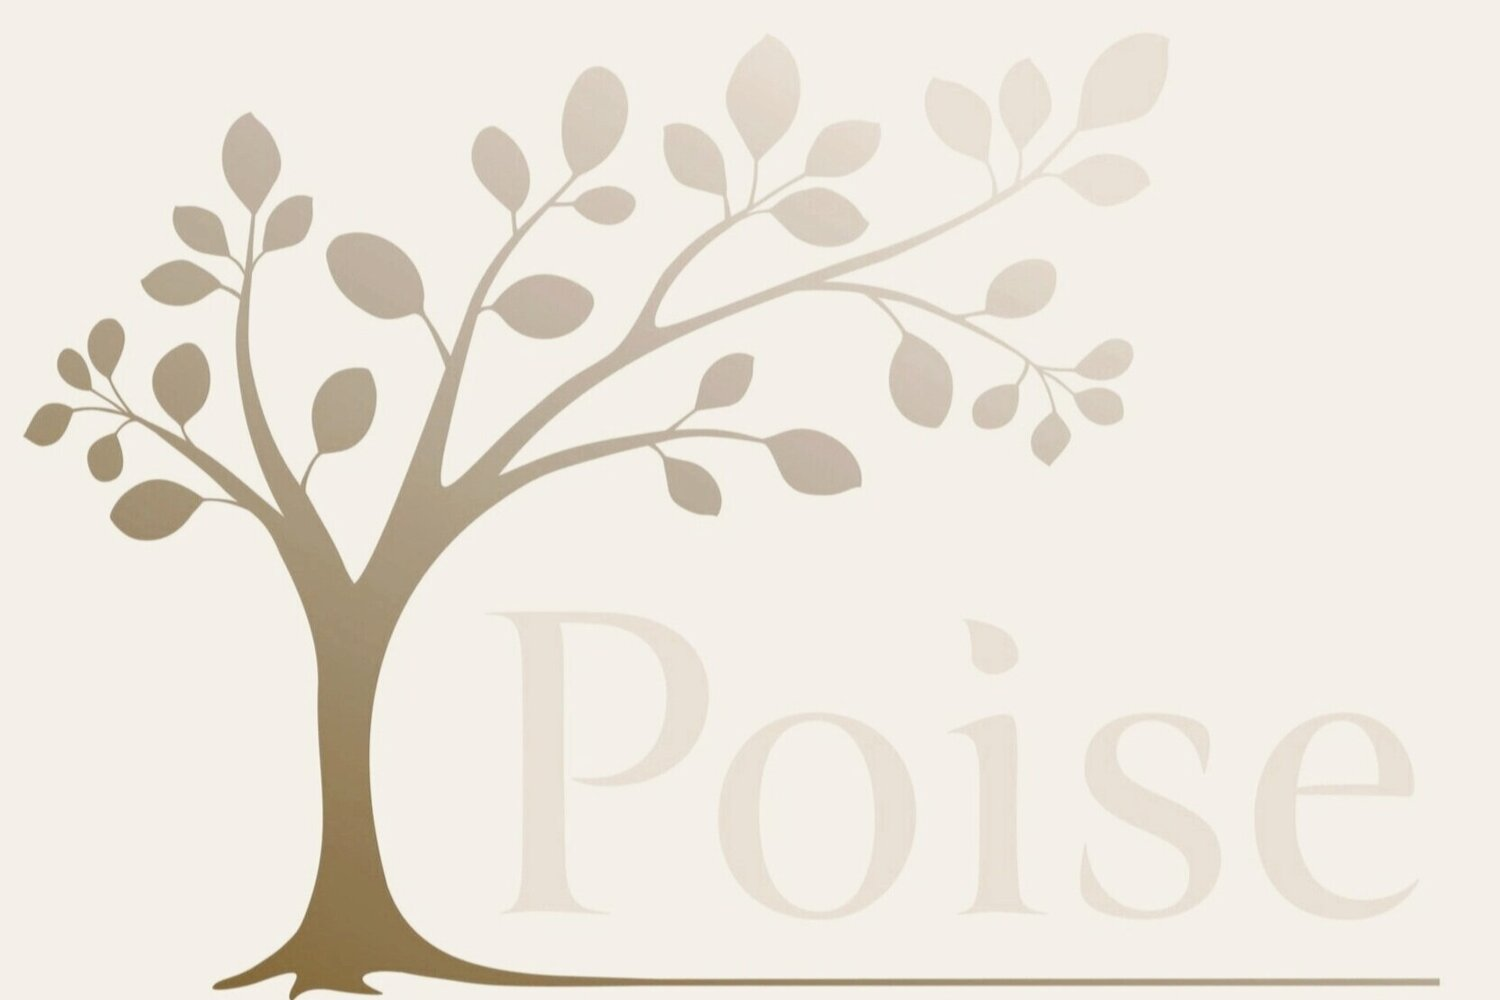 Poise Yoga Studio & Foot Sanctuary